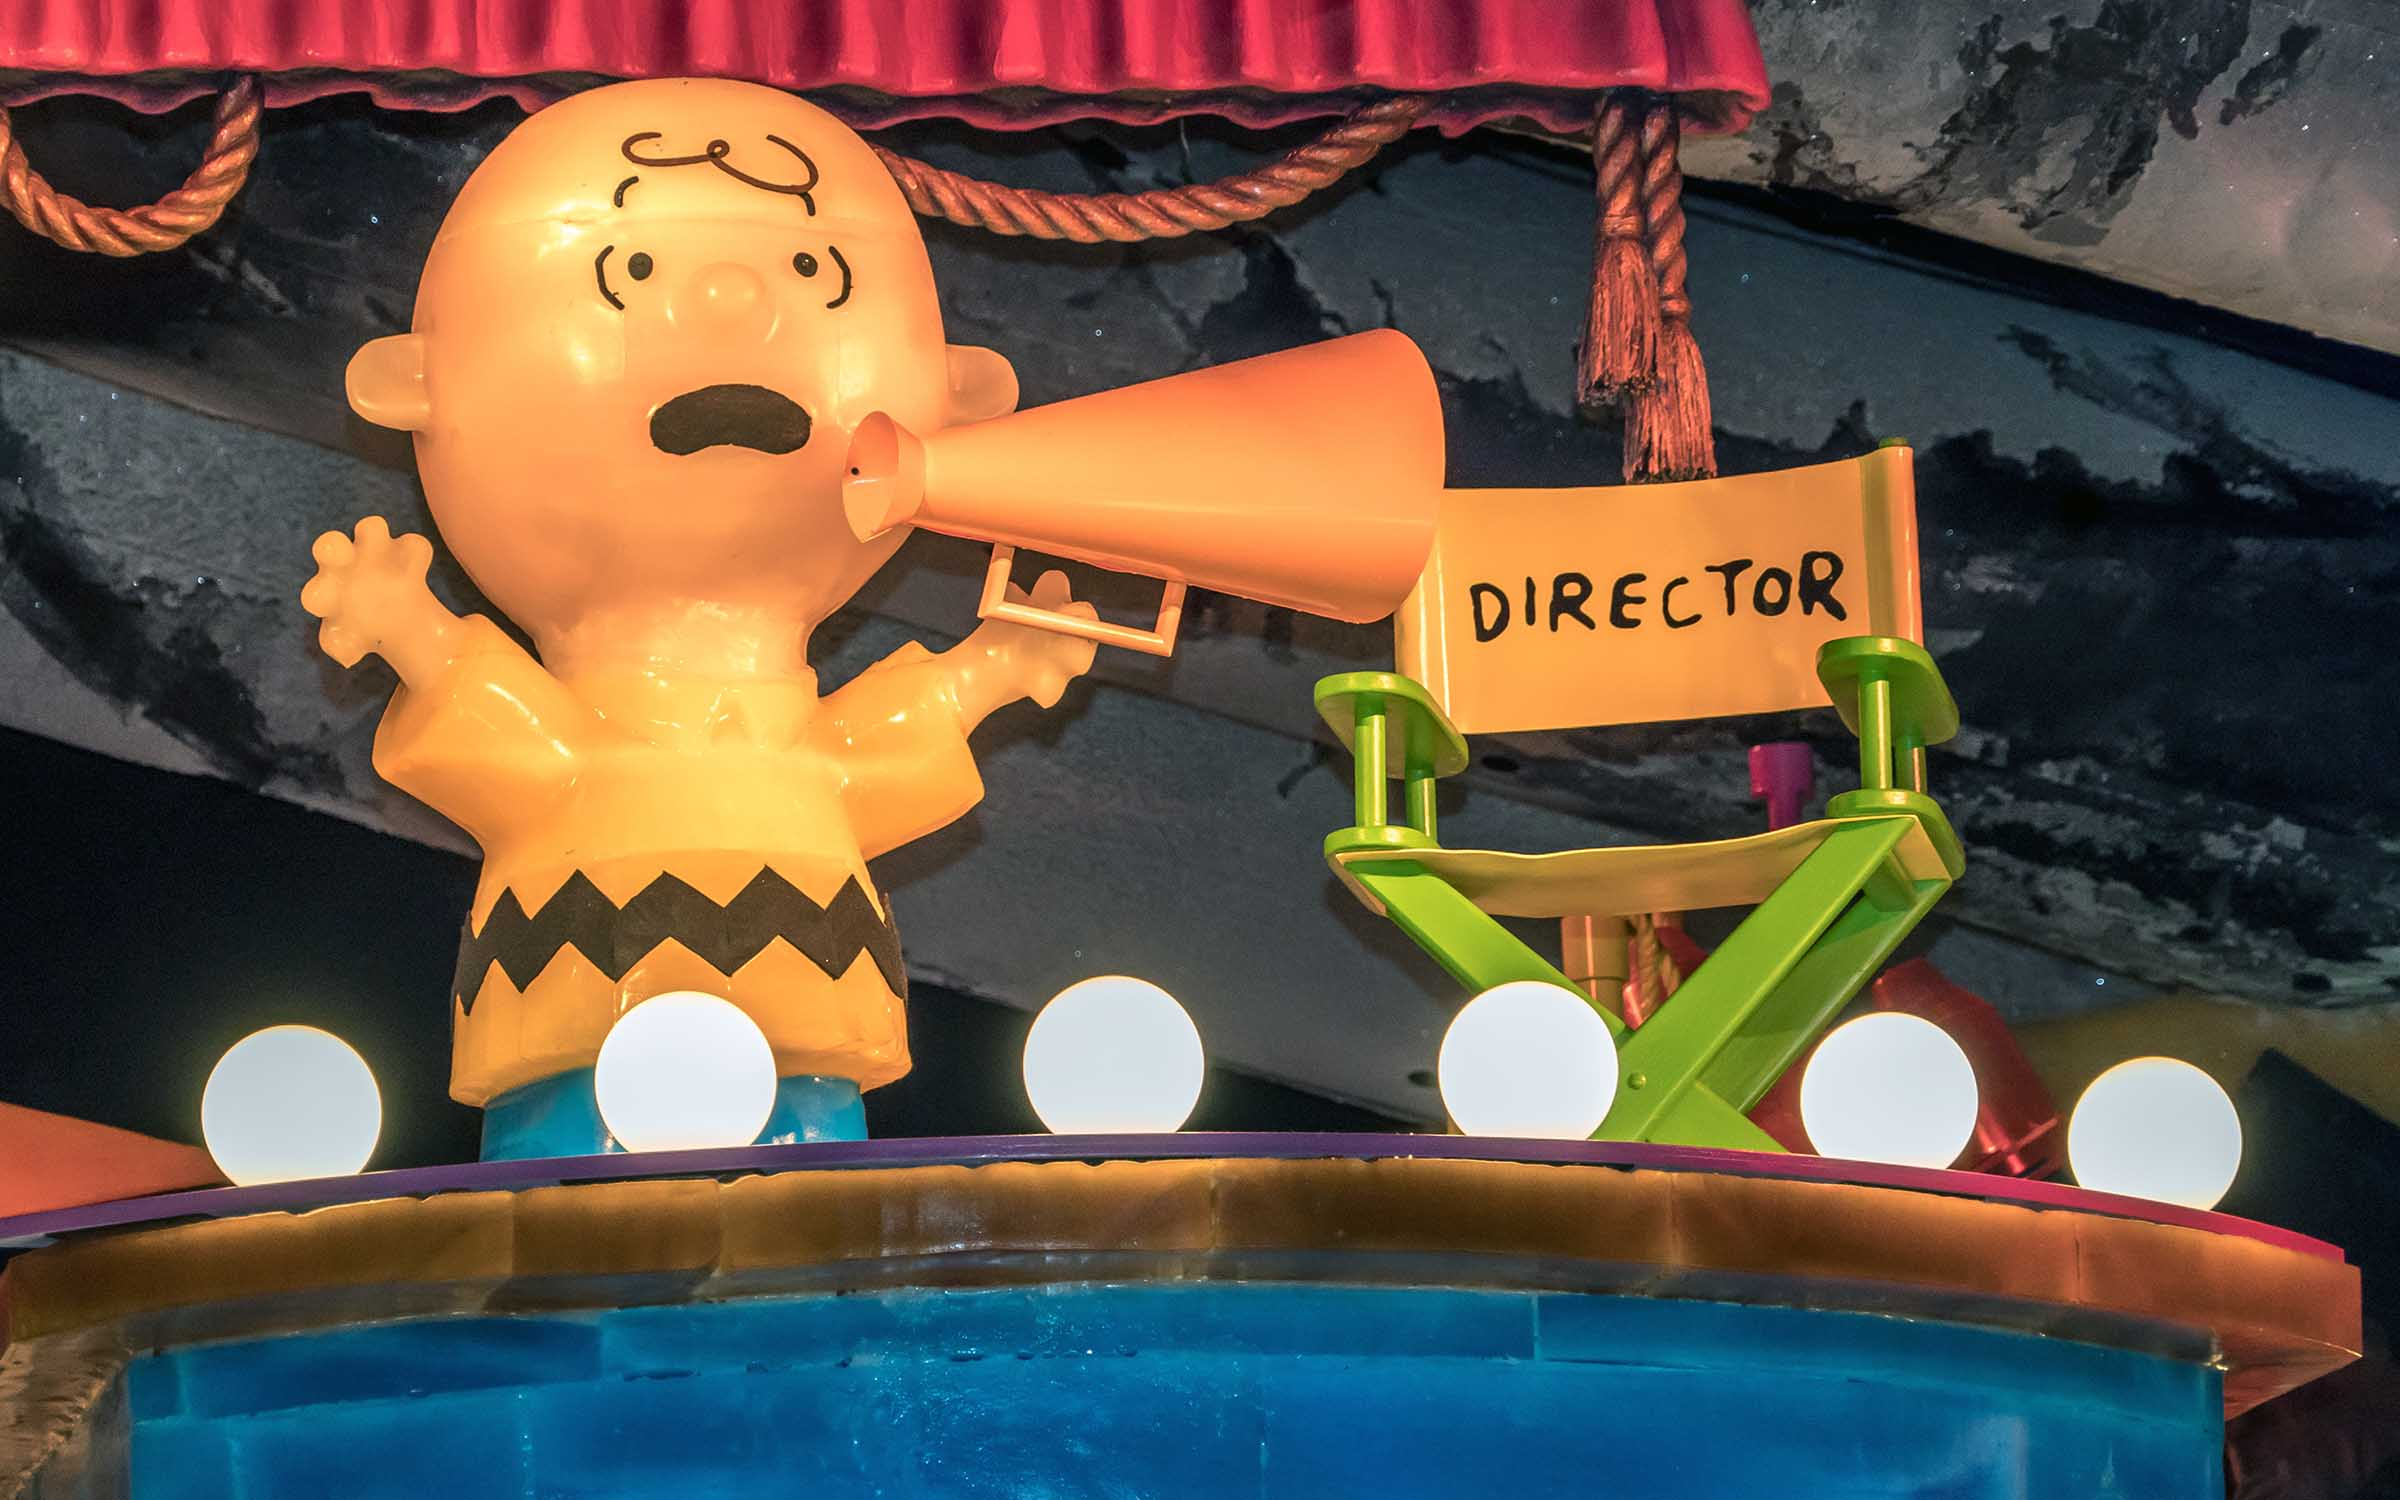 Charlie Brown, Director.